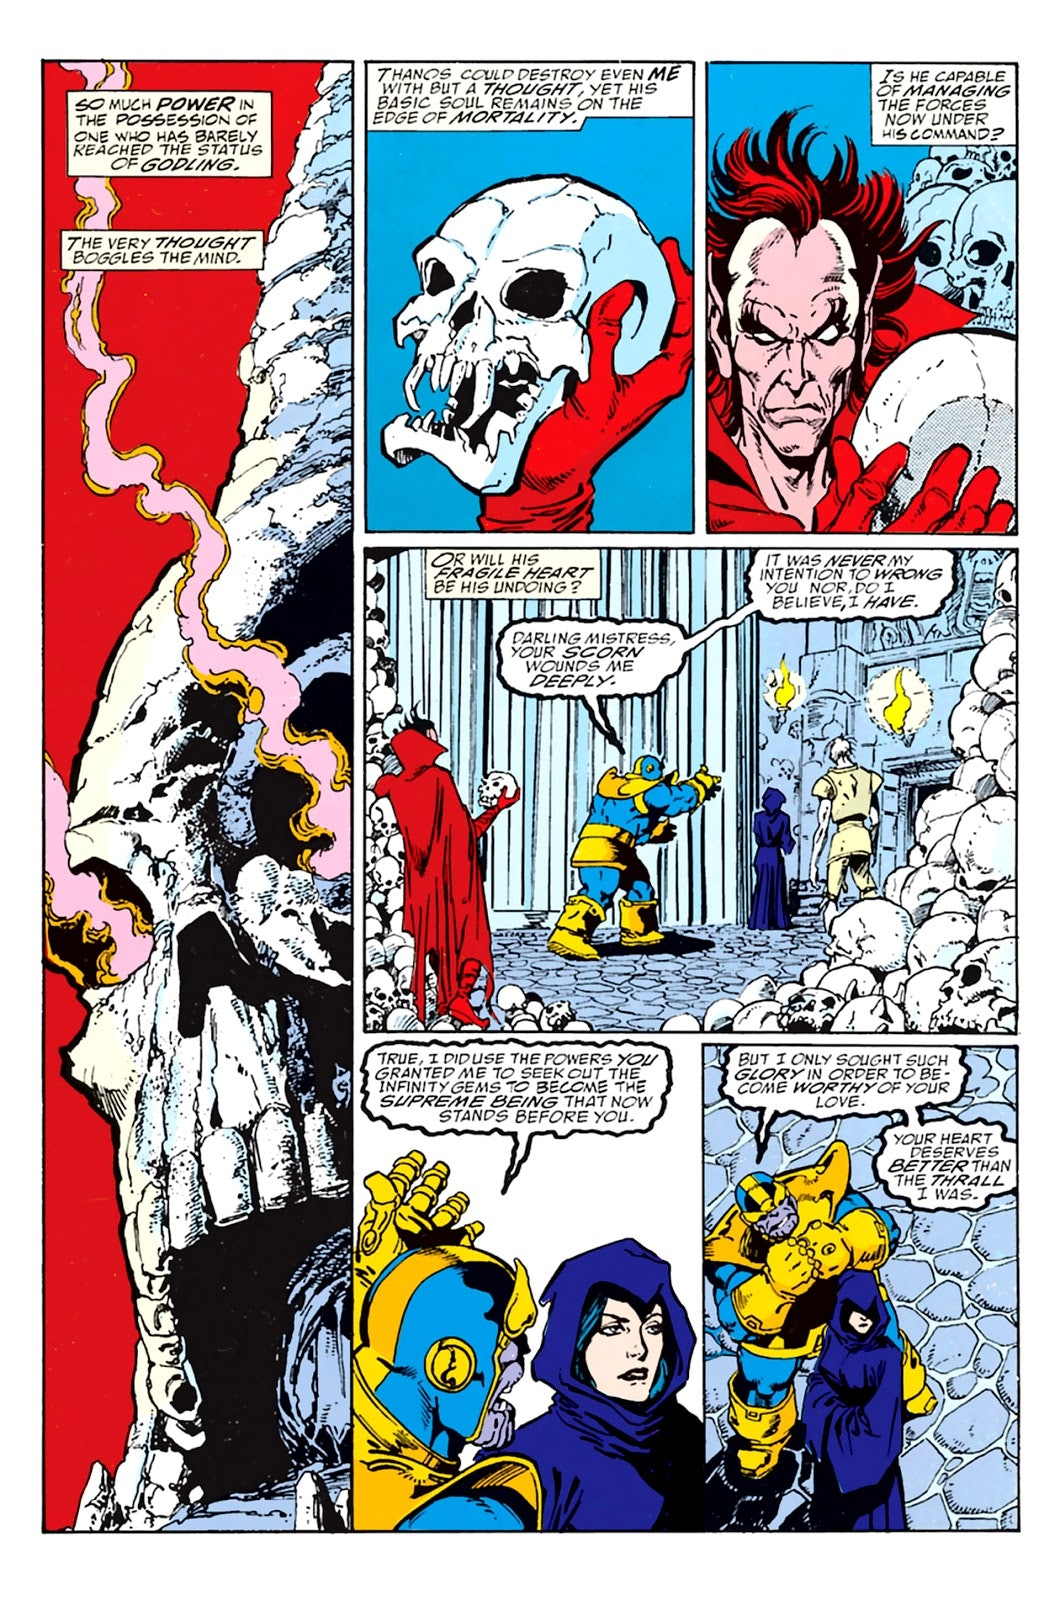 In the comics, Thanos tried to woo Death.